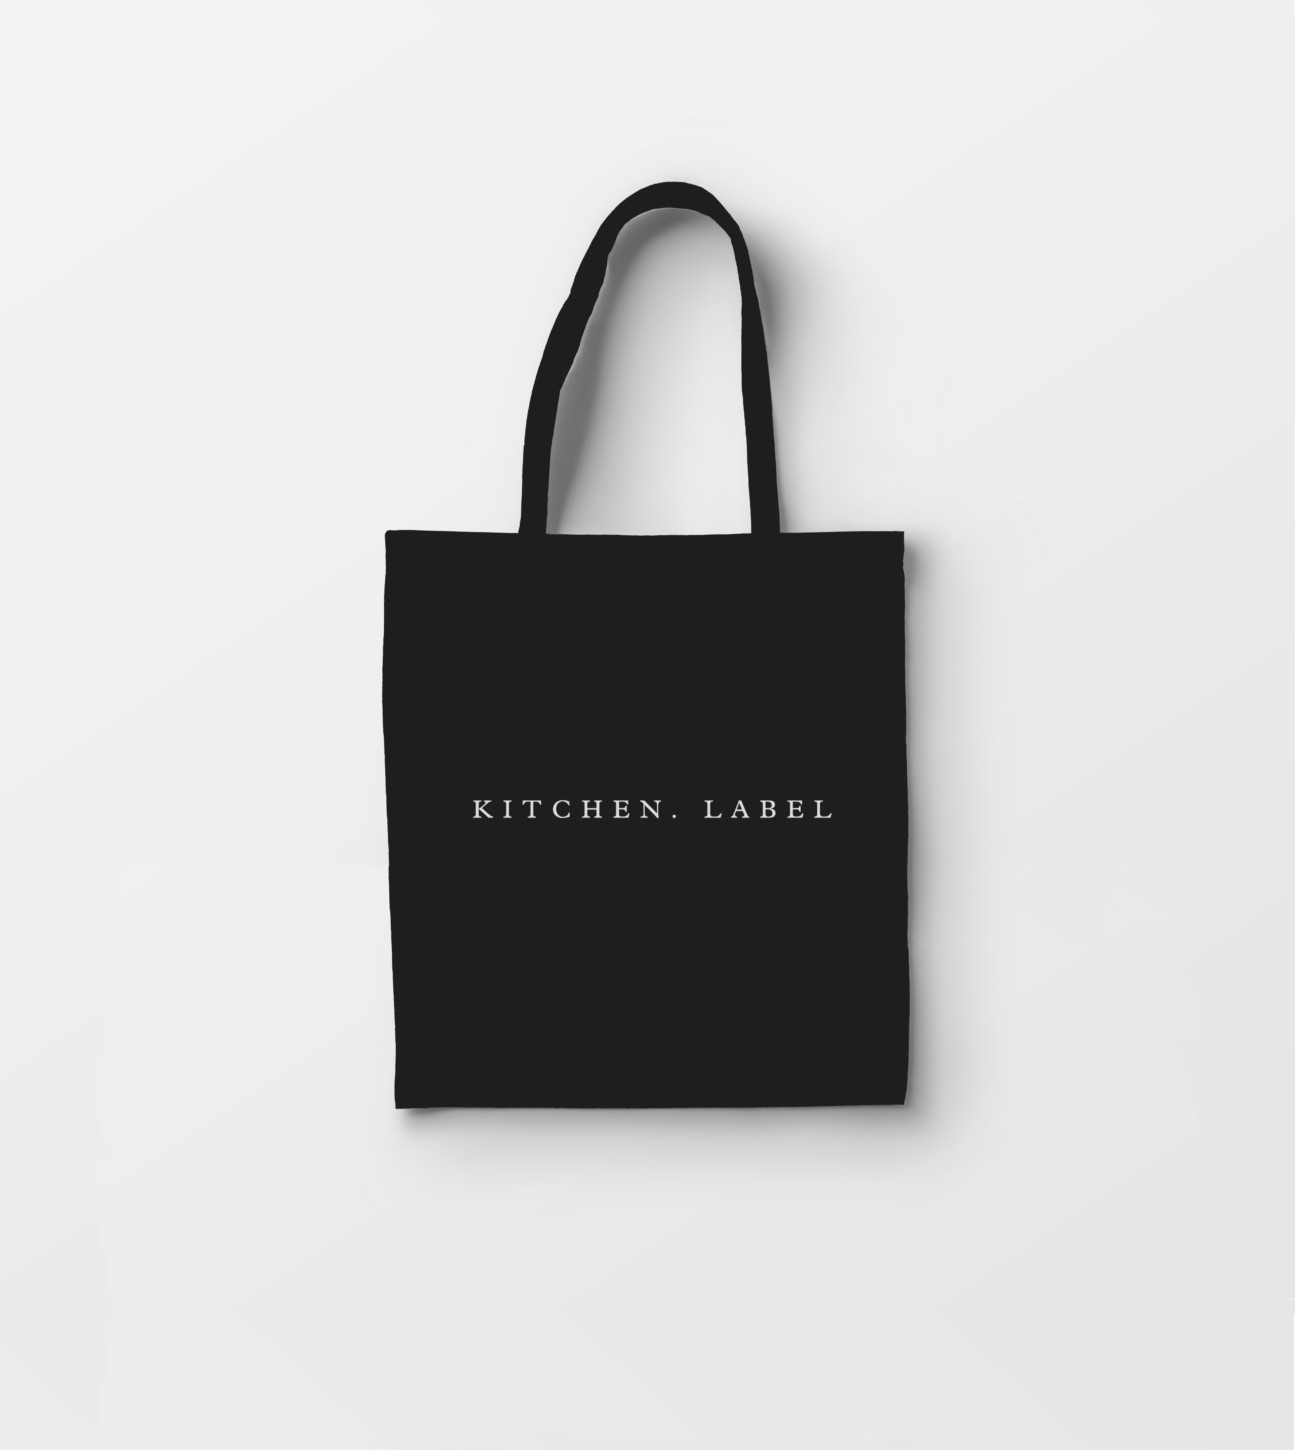 LABEL Tote Bag – 2nd Edition – KITCHEN. LABEL